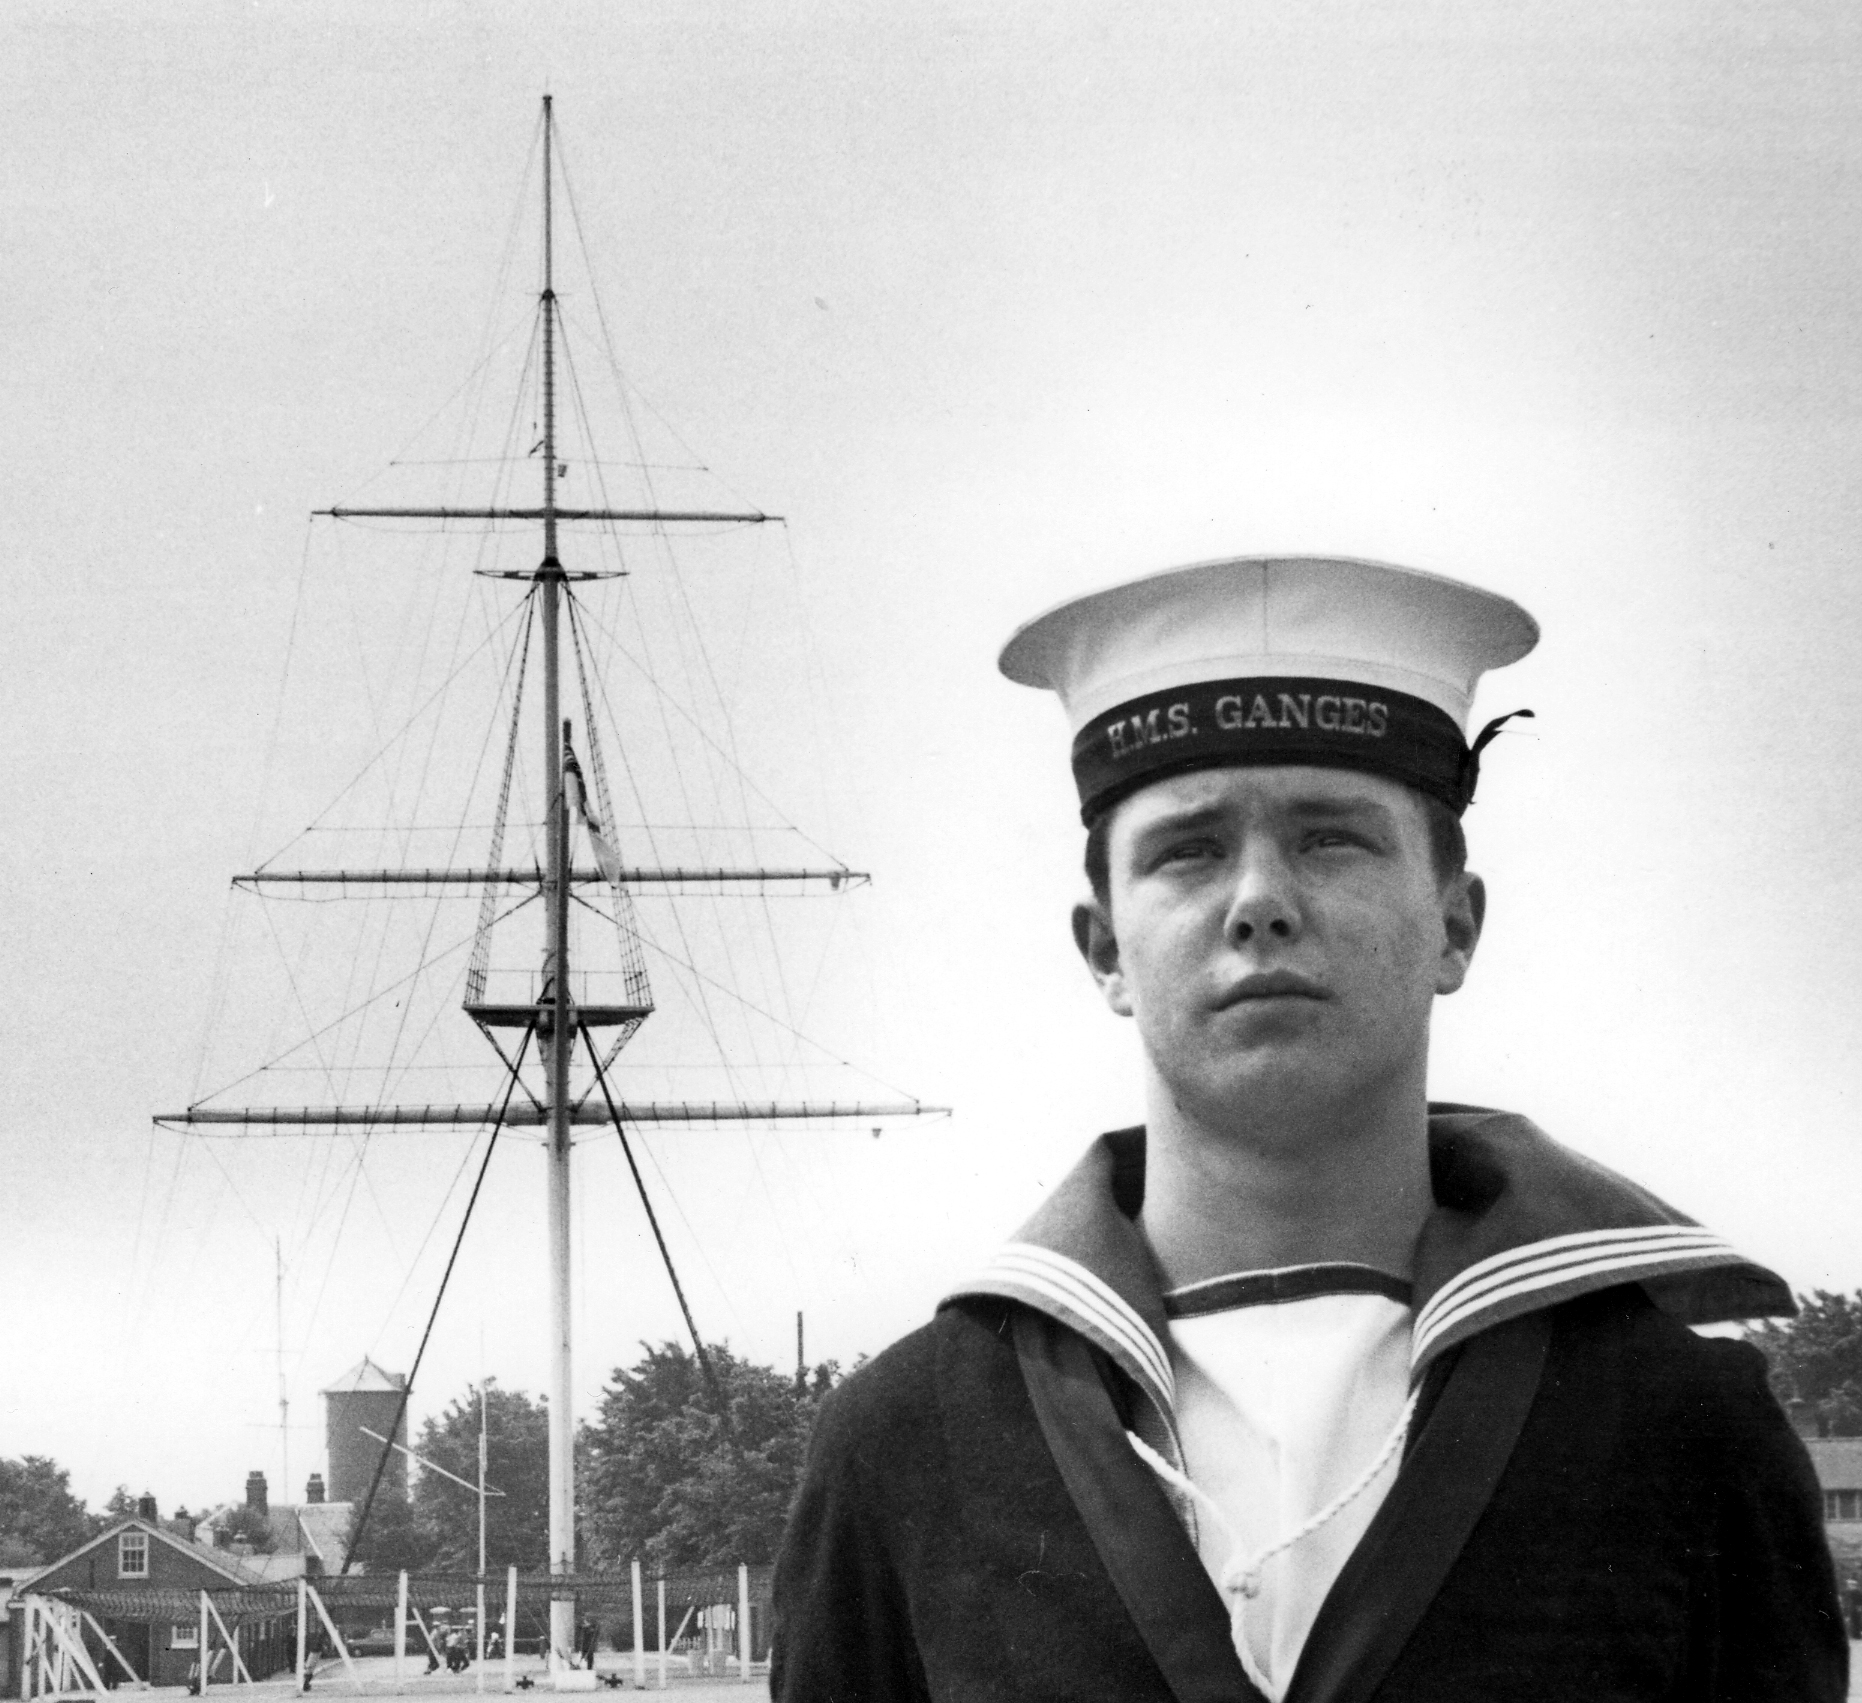 Gwyn Charlton at HMS Ganges with the mast in the background.